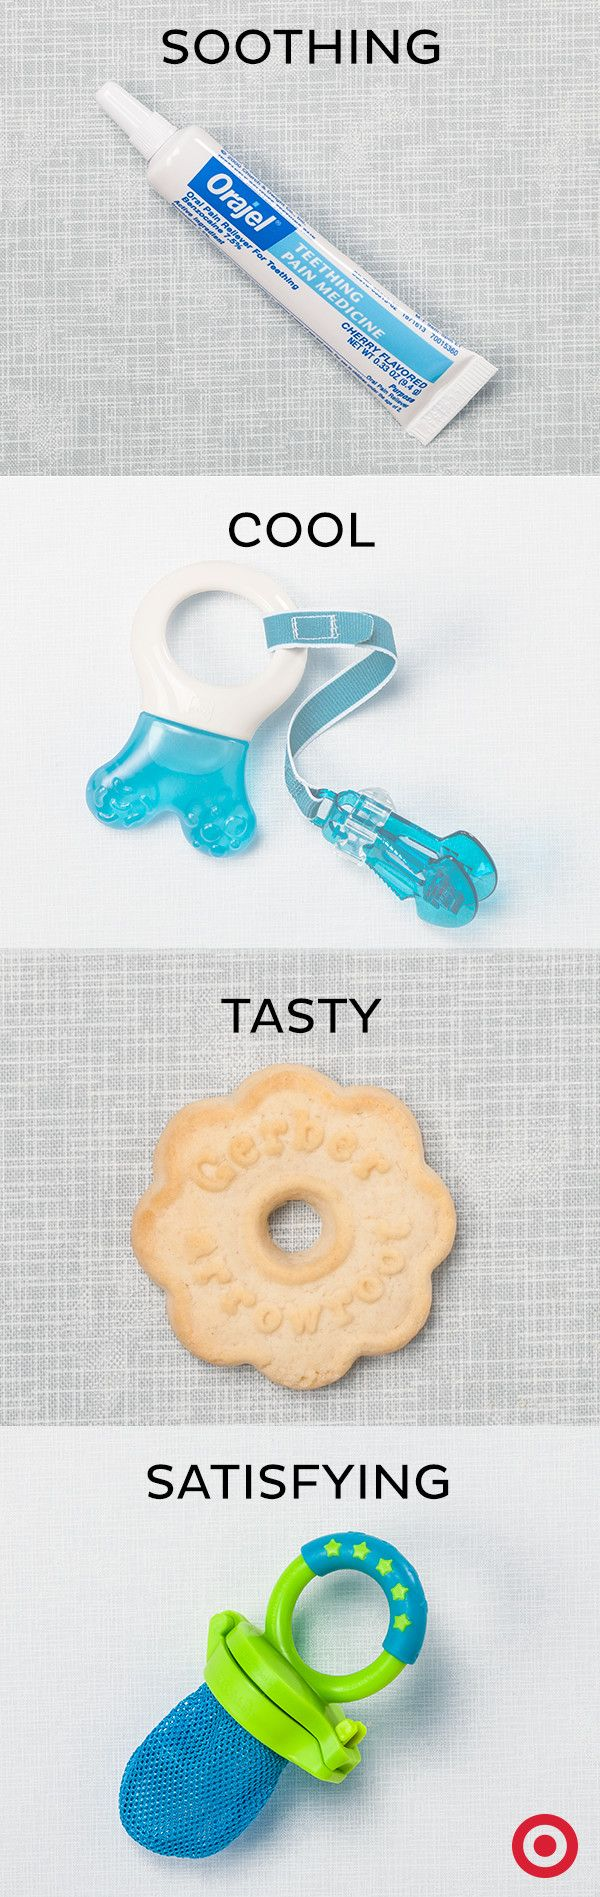 Trust us: teething is tough on babies and parents. Thankfully, there are great teething relief options like Orajel, frozen teethers and crackers. Try a few and see which does the trick for your little one.